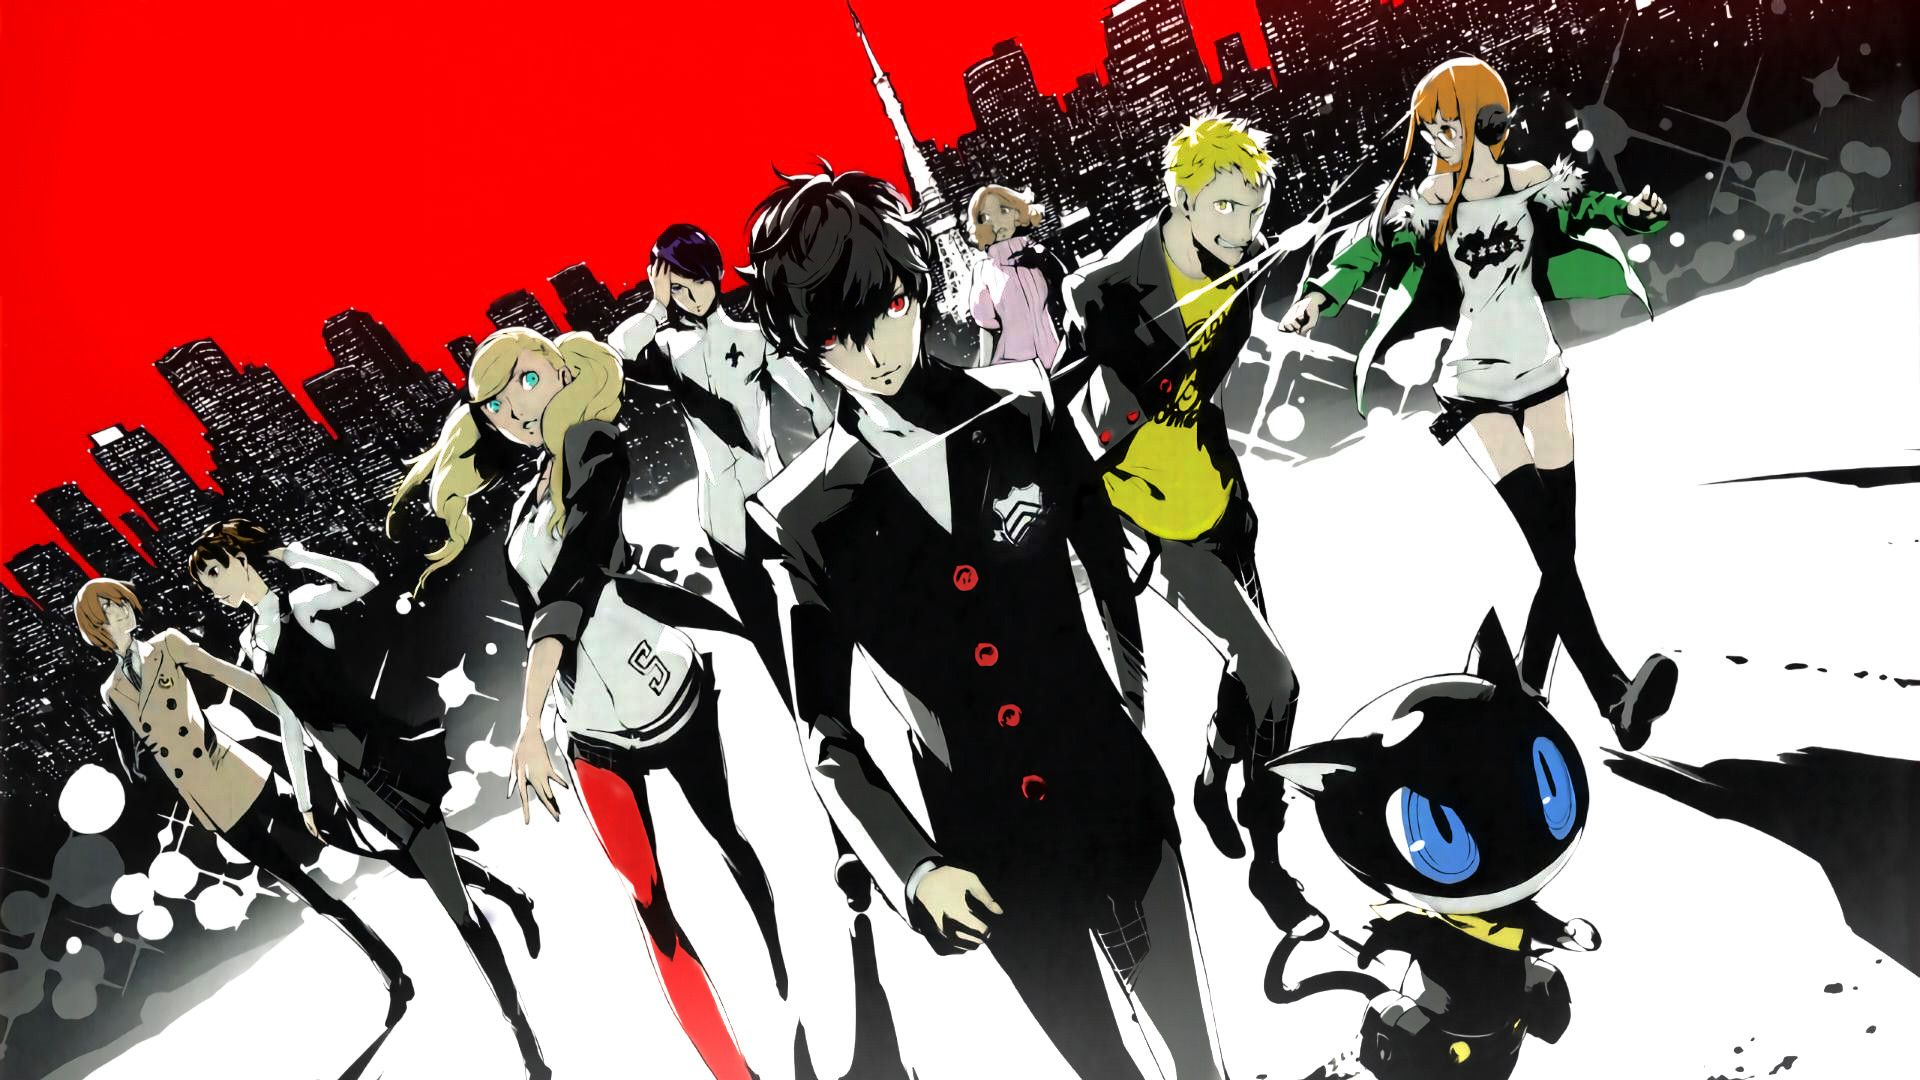 Did A Quick Coloring Of The P5 20th Anniversary Art 1920x1080 Need Iphone 6s Plus Wallpaper Background For Iphone6splu Persona 5 Persona Persona Five